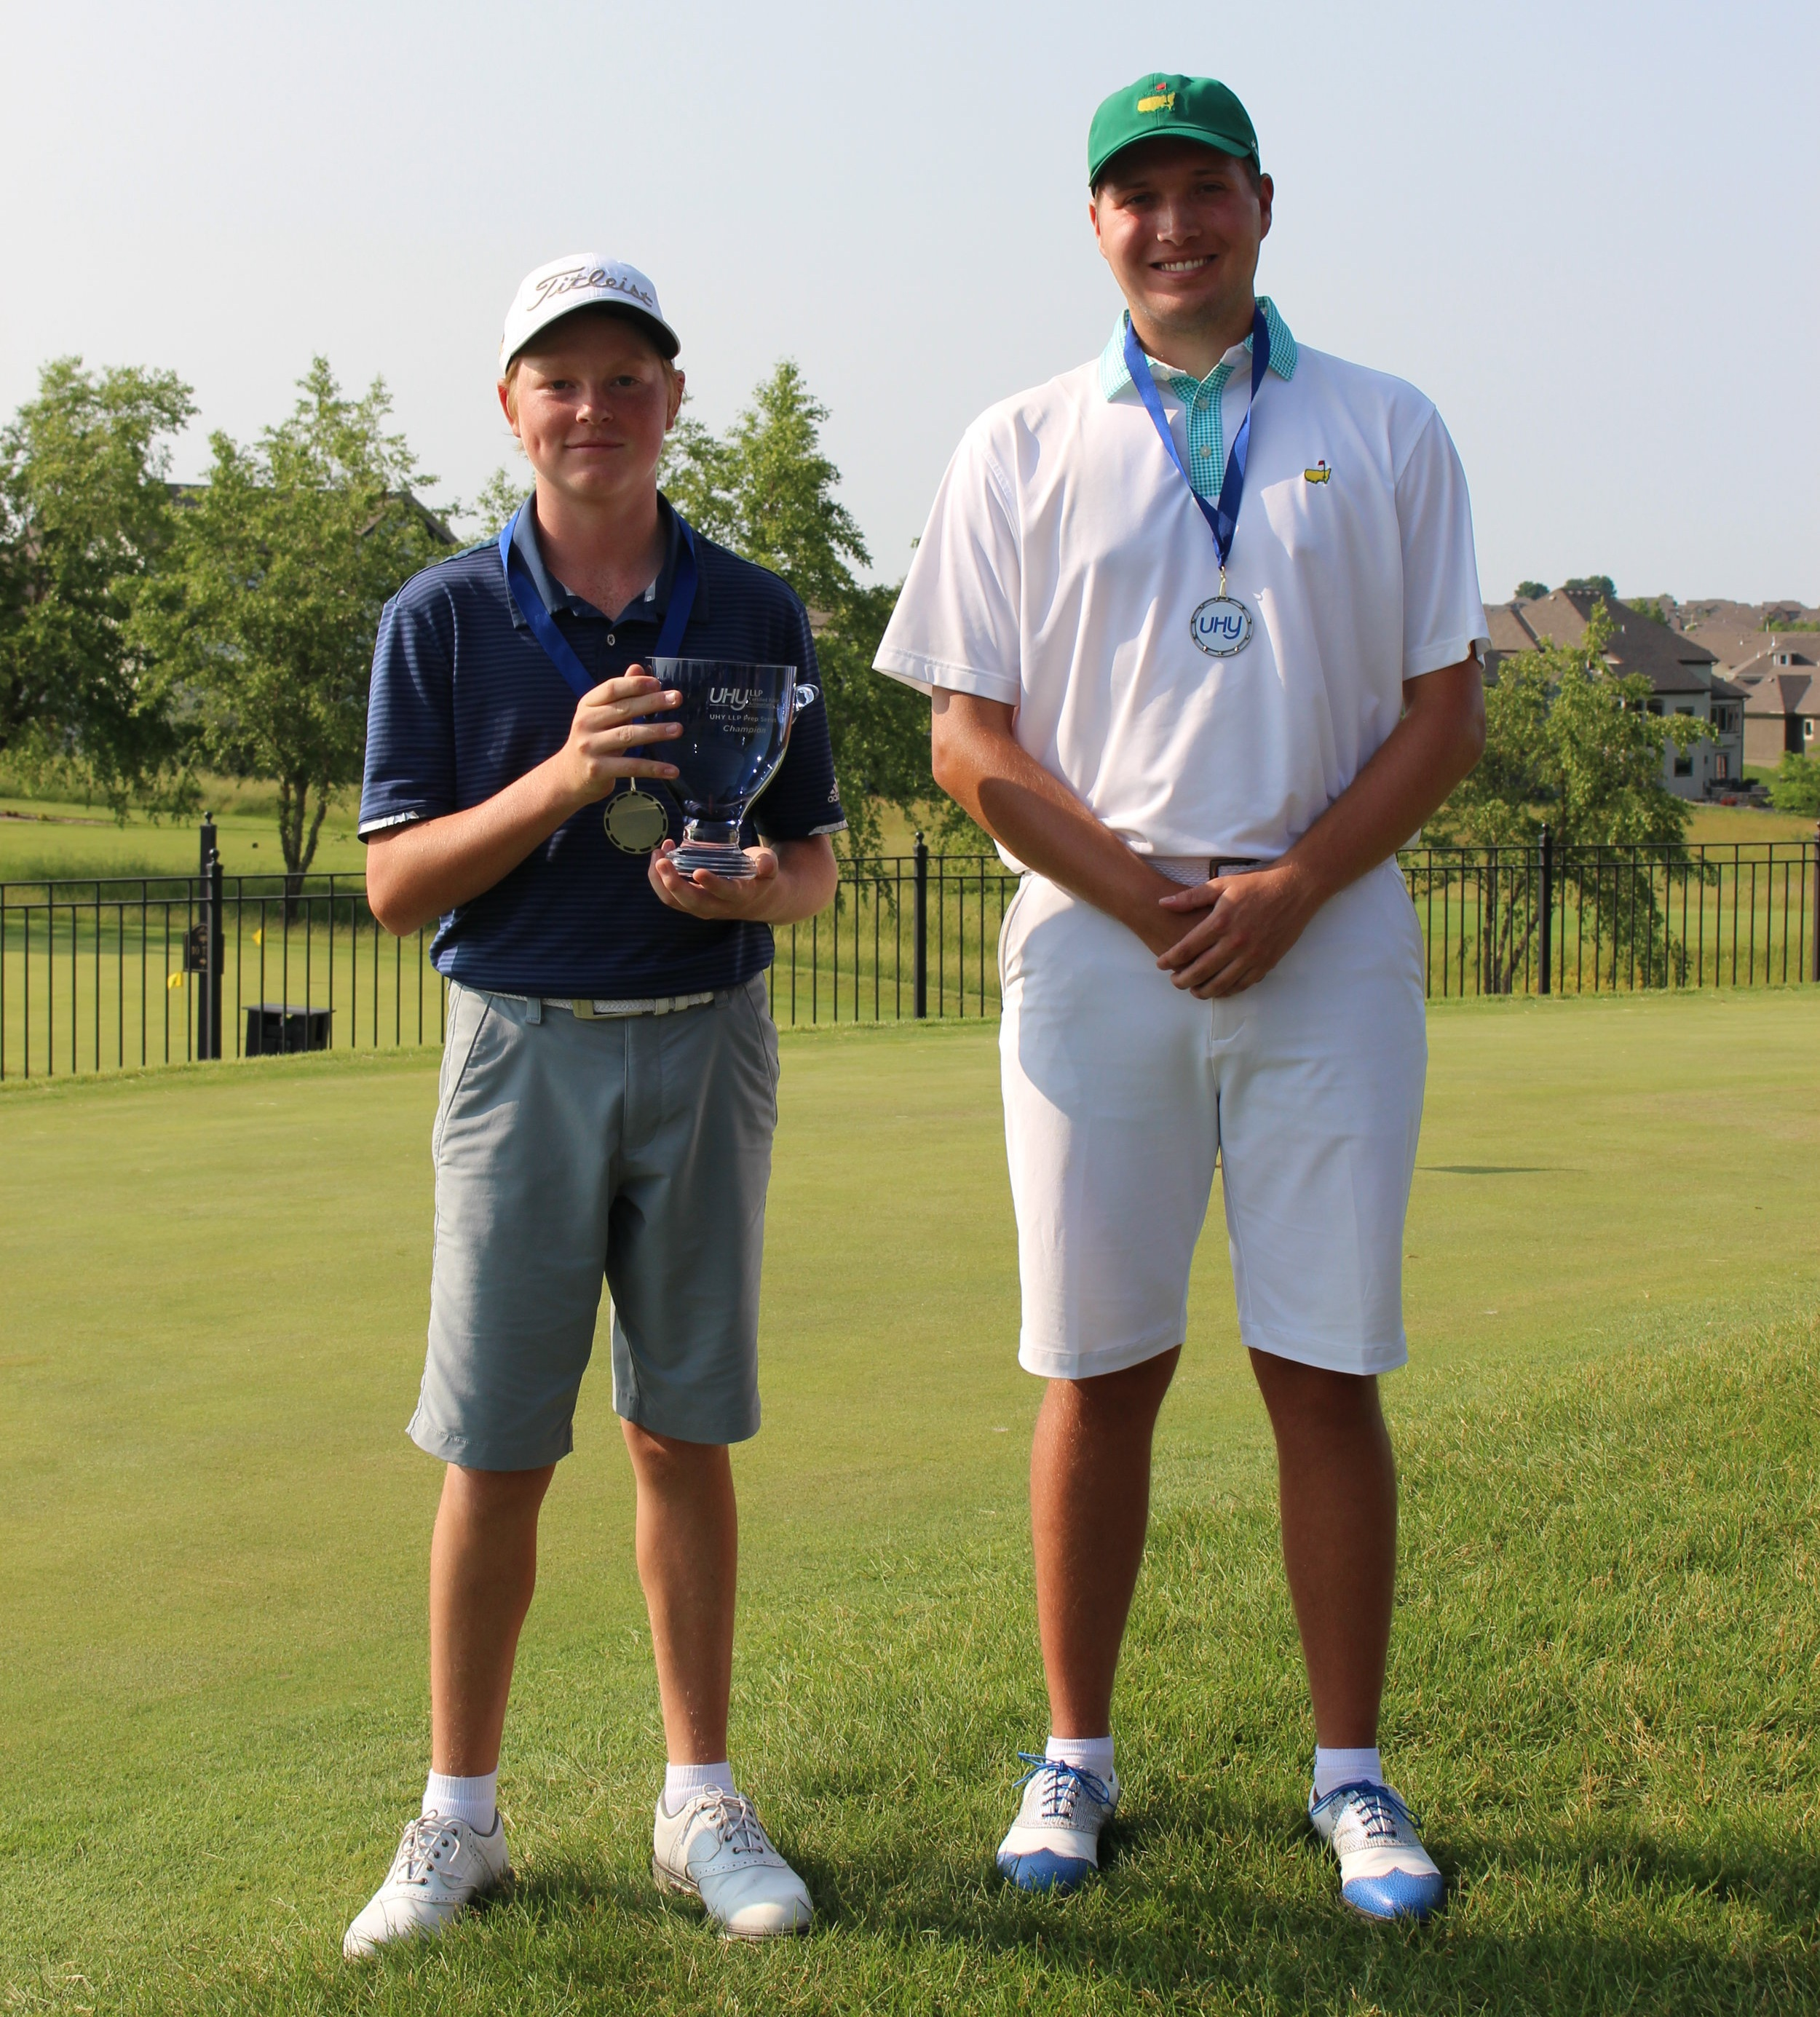 Ian McCrary from Overland Park, KS was the boys champion winning a scorecard playoff over Nick Pittman from Urbandale, Iowa. Both Ian (77-73) and Nick (74-76) shot 6 over par 150. William Whitelaw from Fayetteville, AR finished 1 shot back in third (77-74-151).